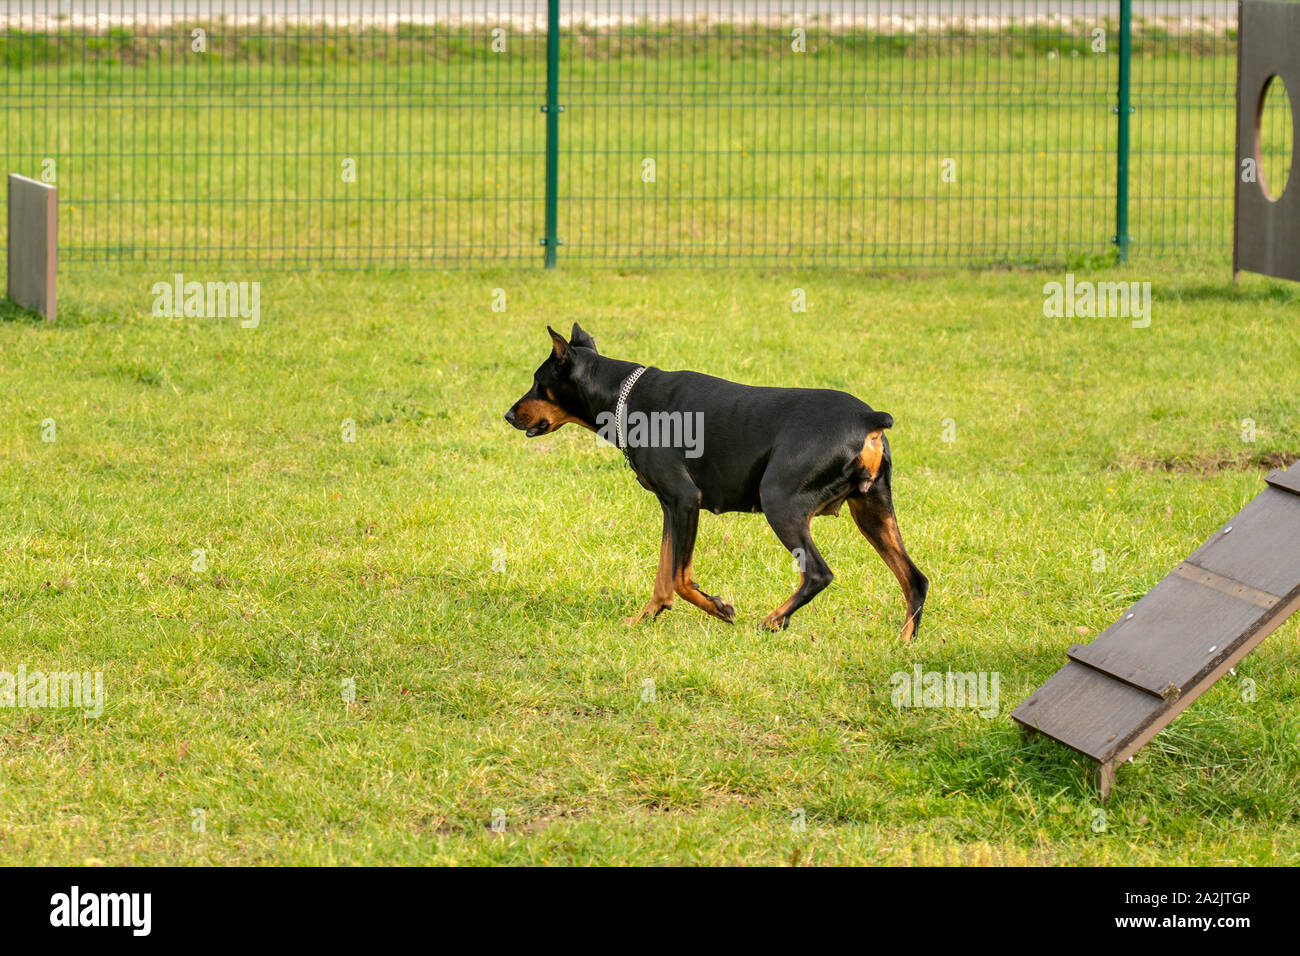 Doberman Pinscher Walking In The Park With Training Hurdles Stock Photo Alamy